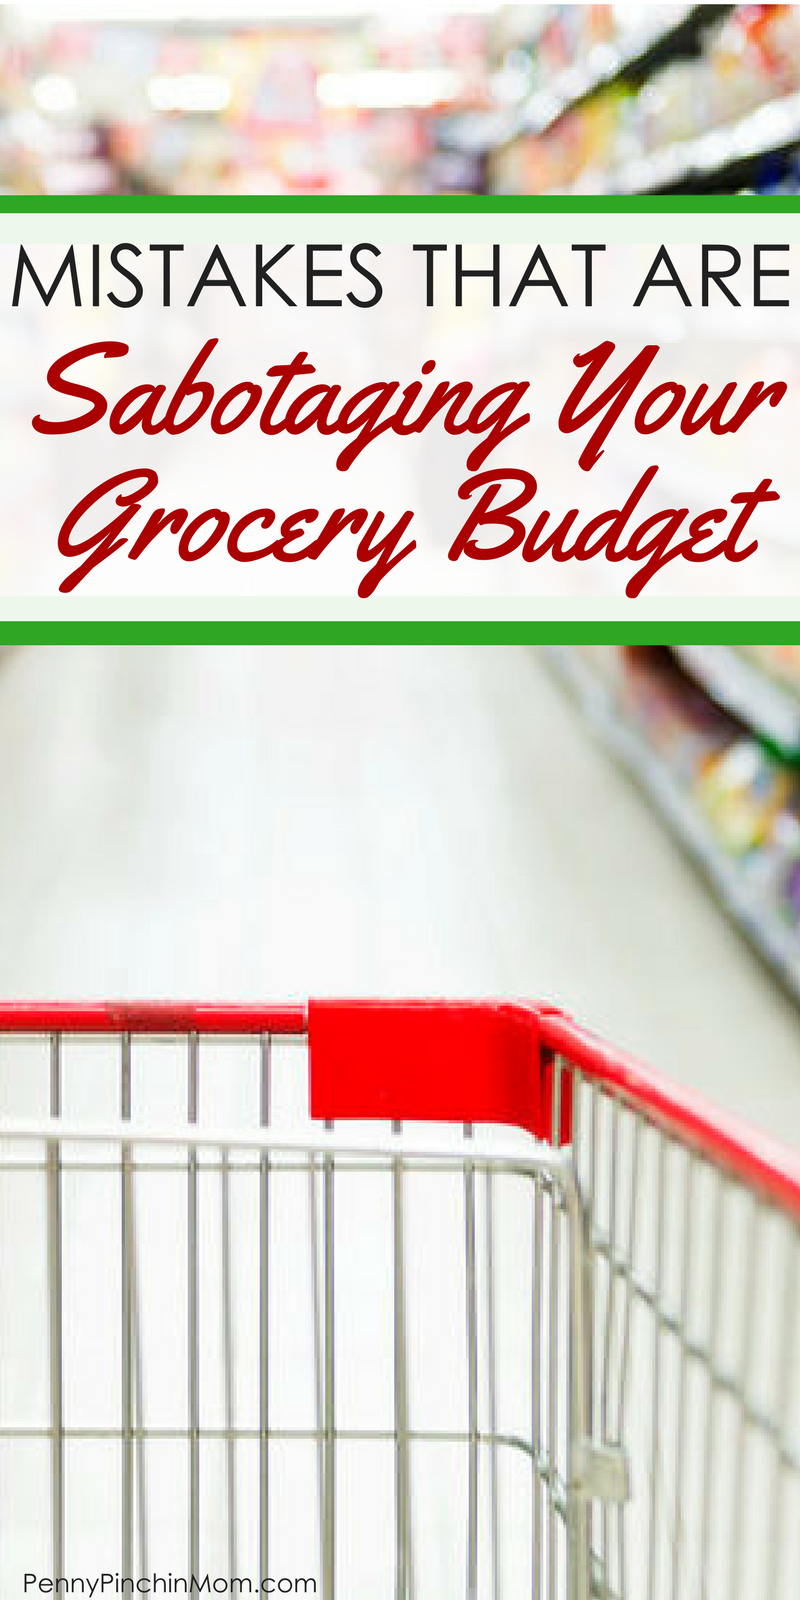 Saving money on groceries: your grocery budget how much to budget for groceries - help my grocery budget - save money on groceries - grocery savings tips - pay less for groceries via @PennyPinchinMom